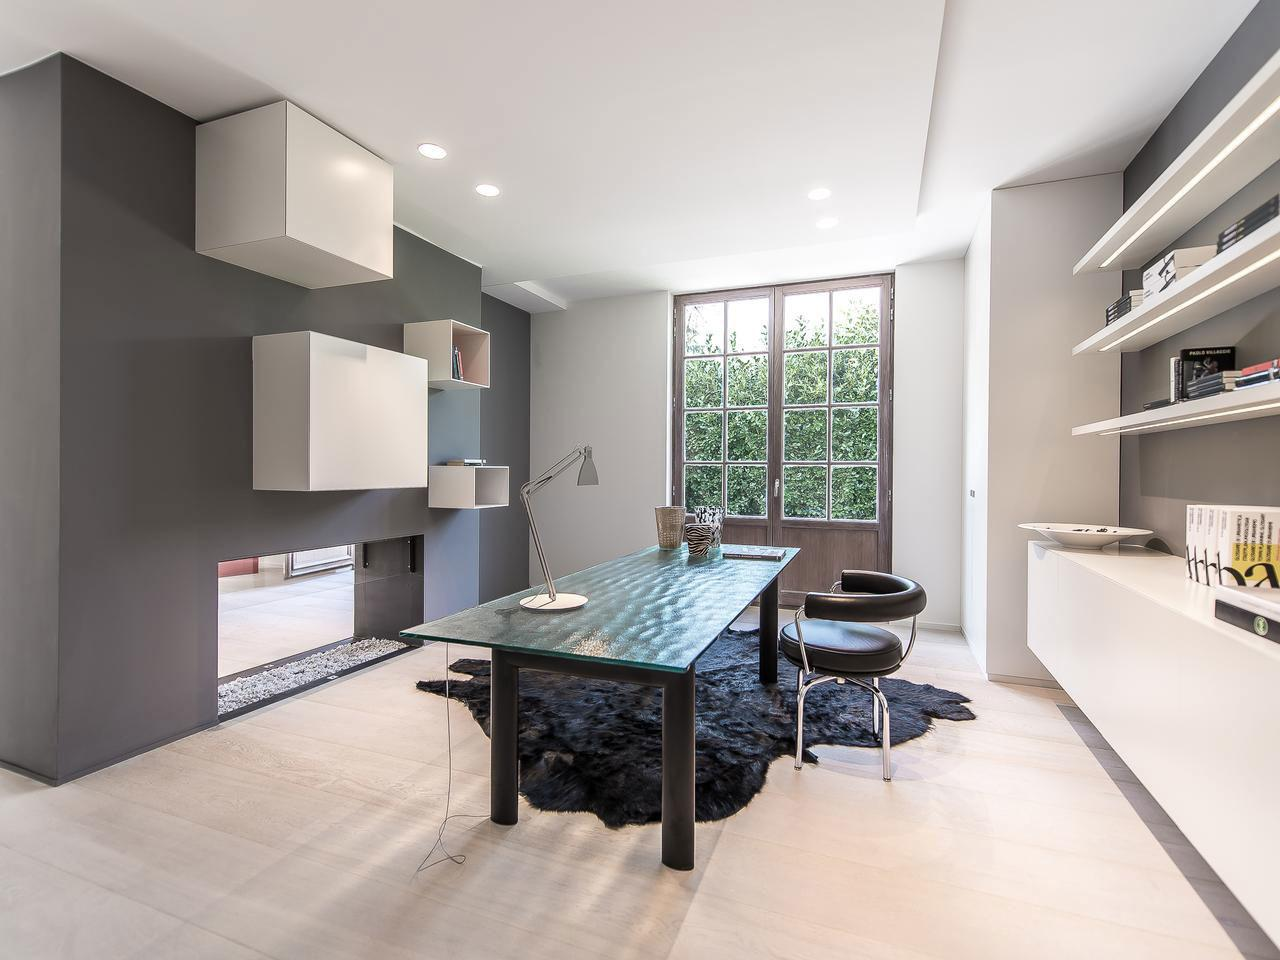 Home Office Fireplace House Renovation Sint Genesius